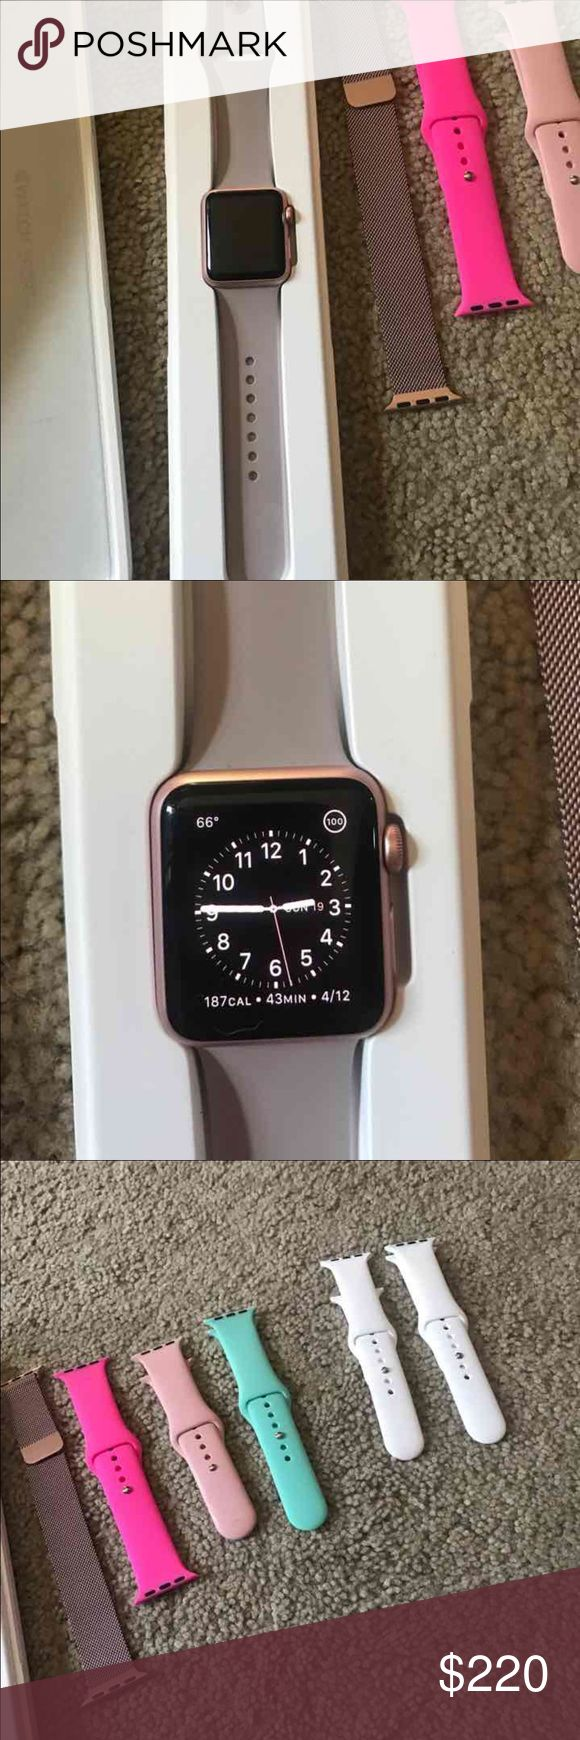 Series 0 Rosegold Apple Watch Used rose gold Apple Watch series 0. The watch is 38mm. Small scratches on top left part of the screen (I cannot get a picture of it) but you can see them in different angles when wearing the watch. Comes with the original box, charging cable, original small AND large band, and after market bands that are size small. The watch is erased, unpaired and completely functioning! Apple Accessories Watches